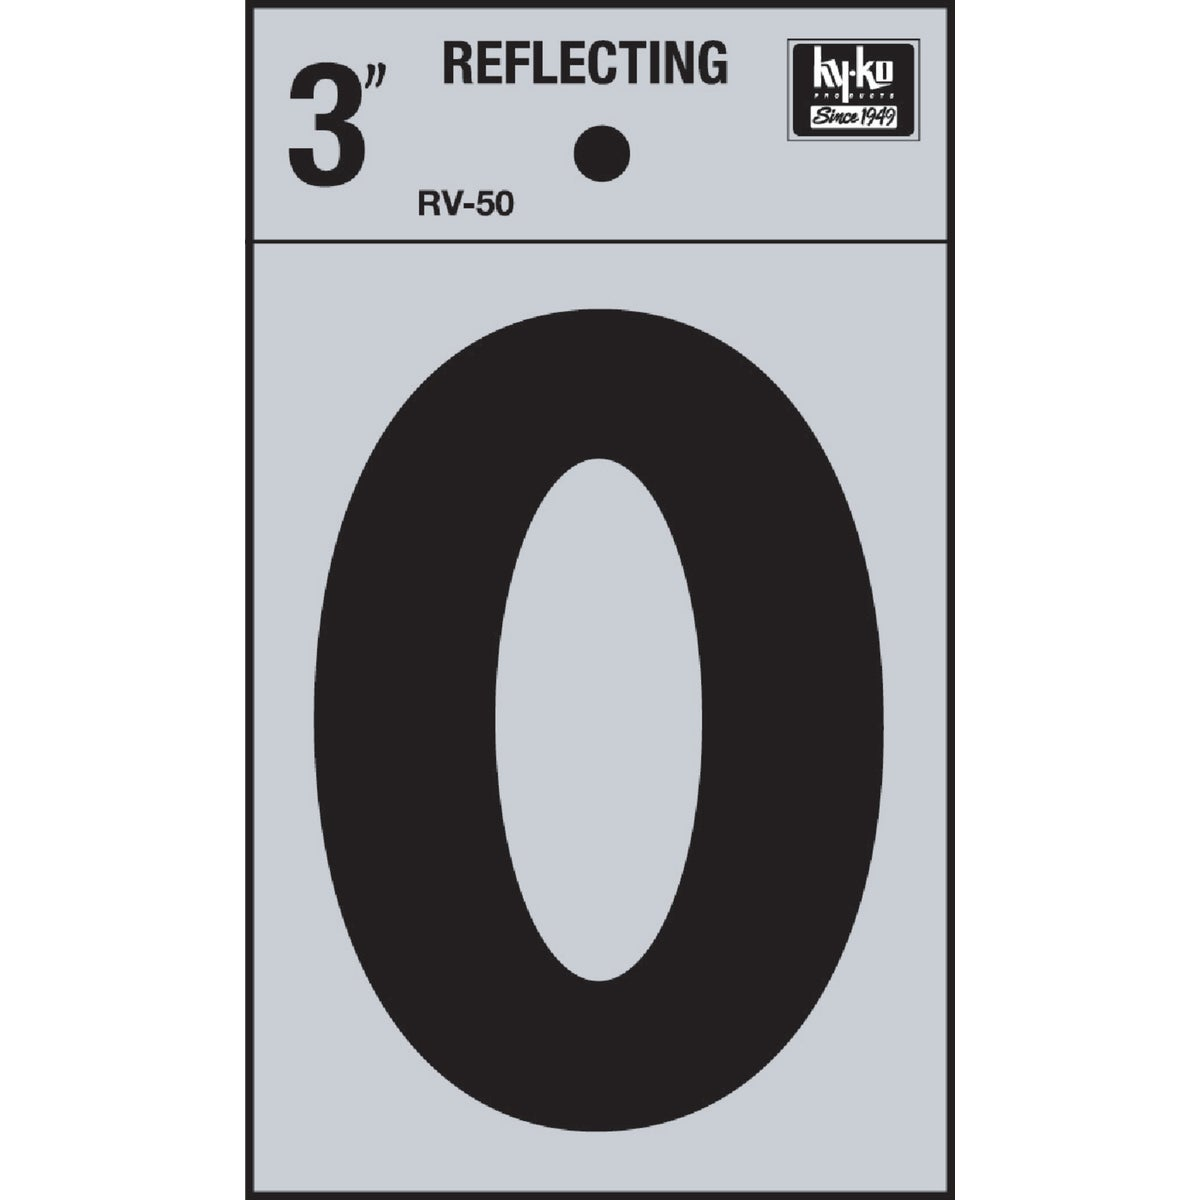 "3"" REFLECT NUMBER 0 - RV-50-0 by Hy Ko Prods Co"